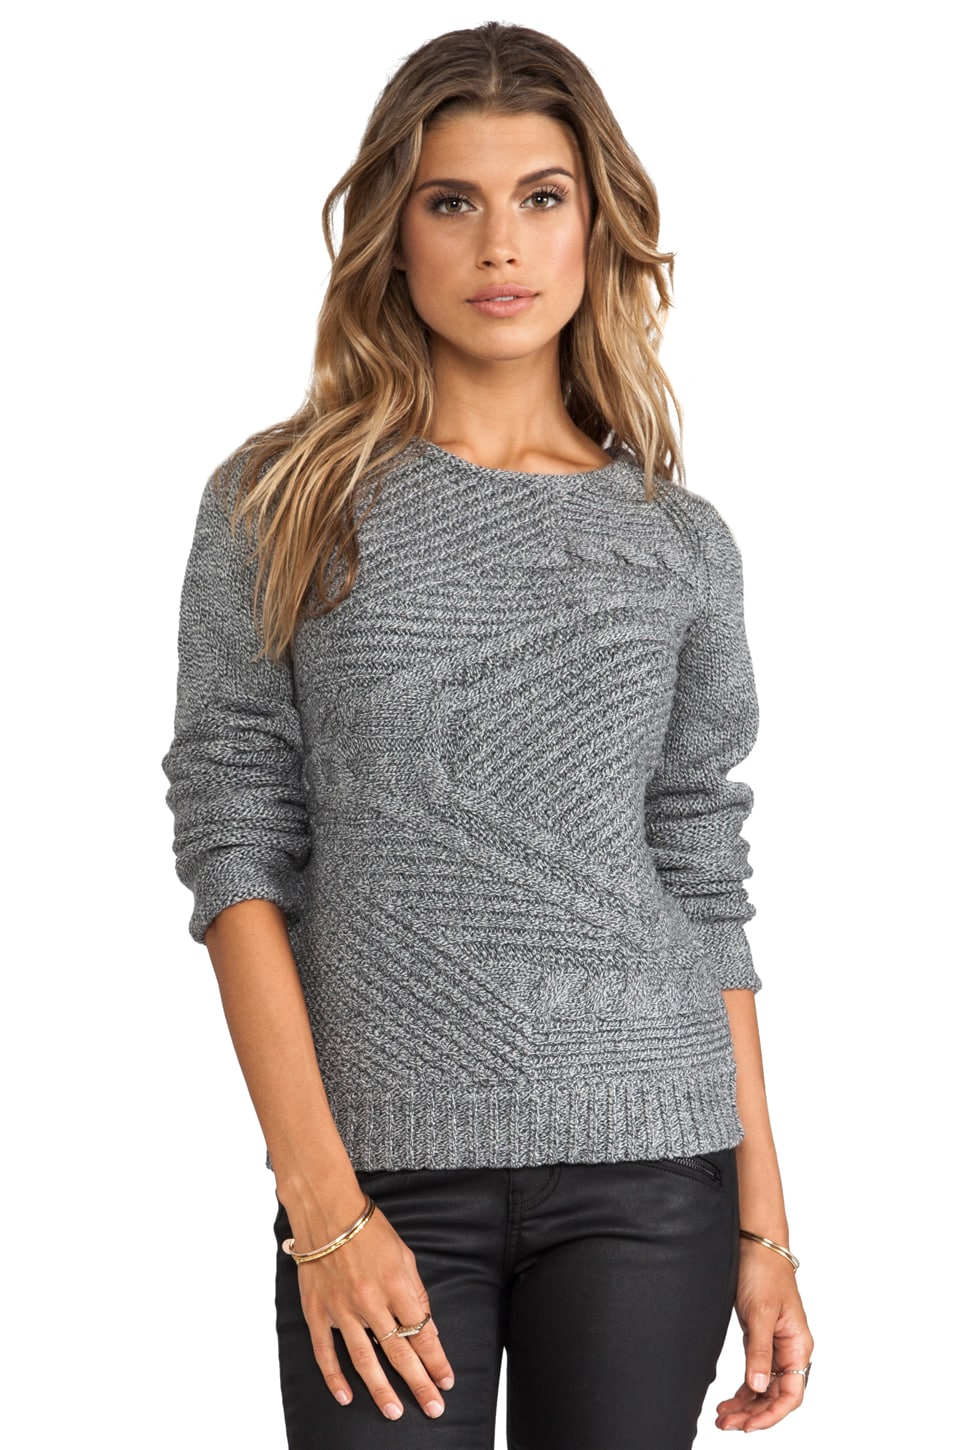 DUFFY Technical Cable Sweater in Black/White Tweed